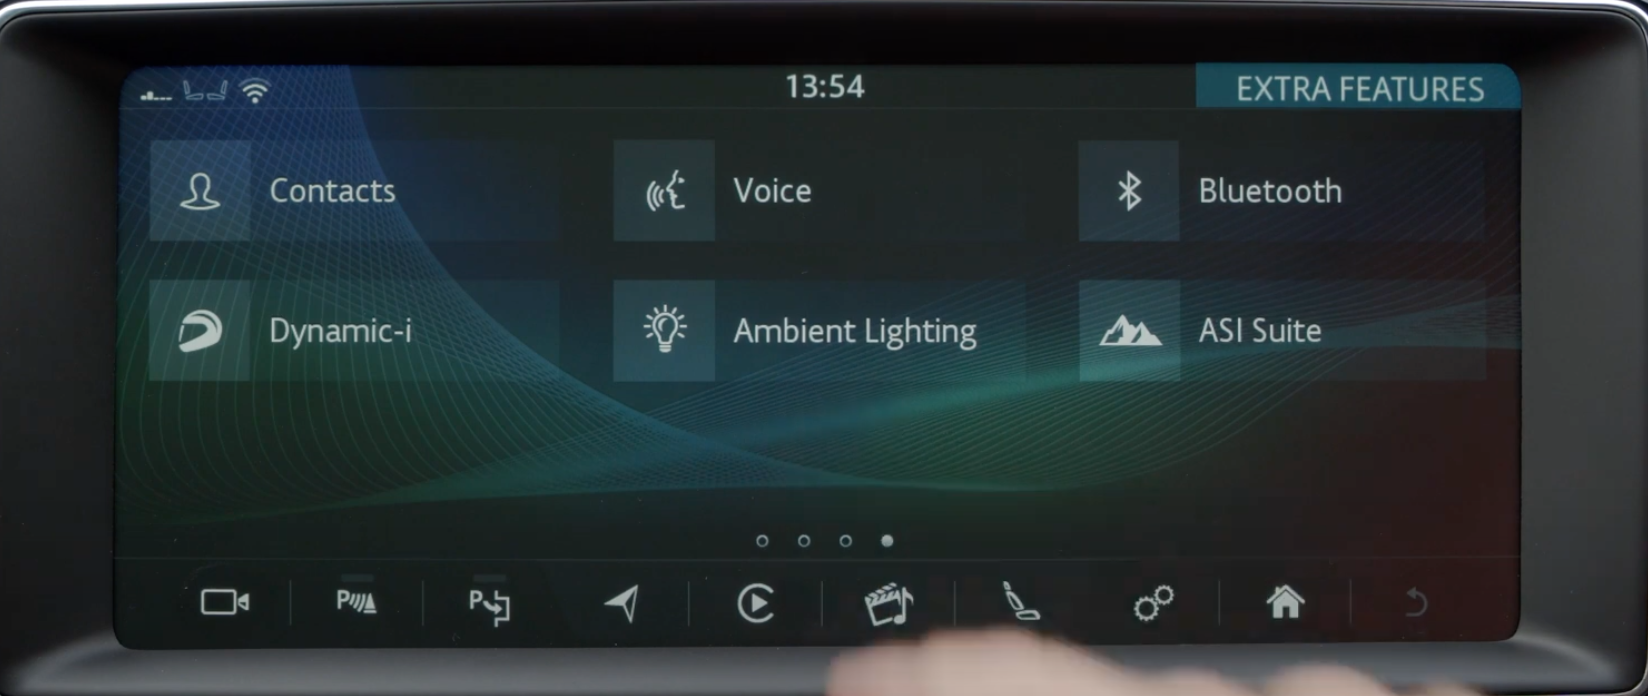 A list of various apps in the infotainment system with icons